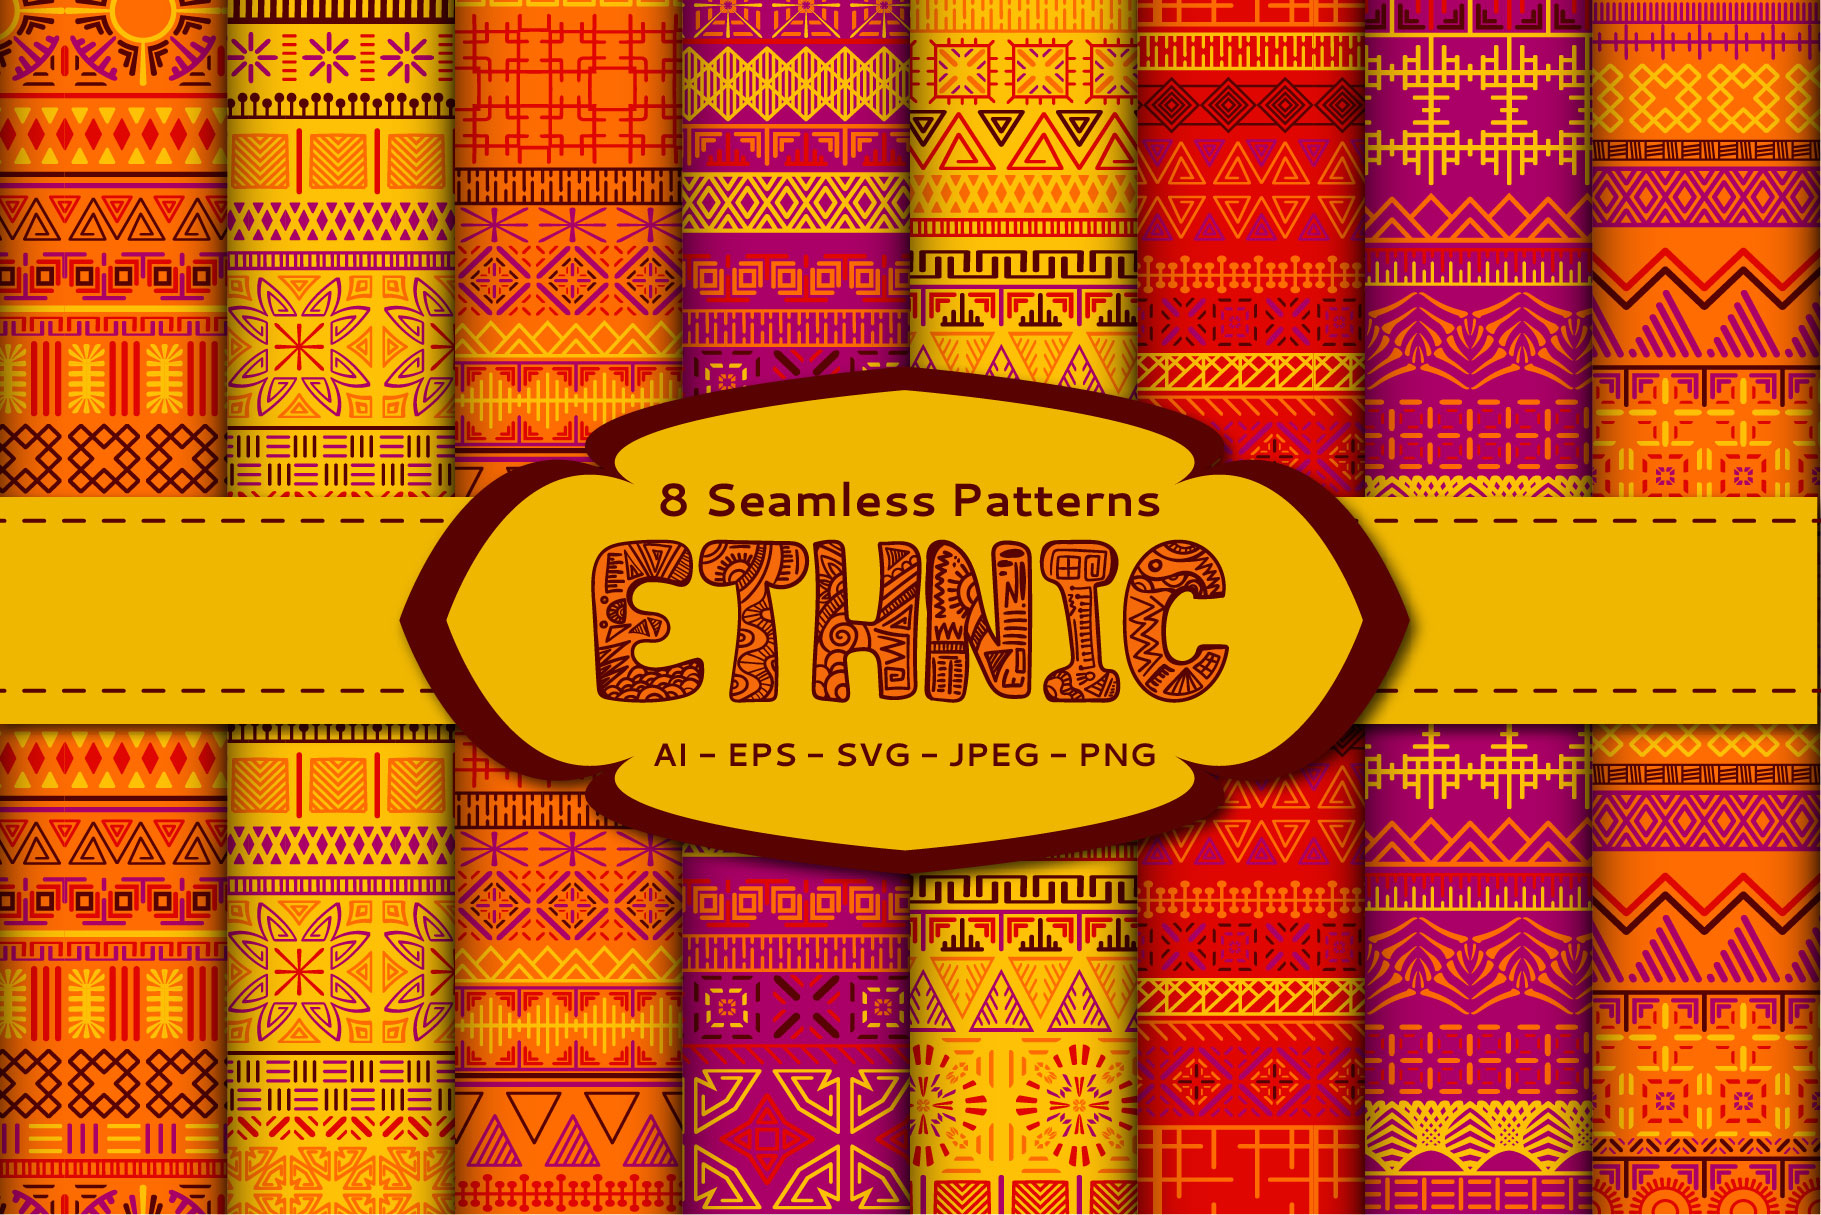 Download Free Ethnic Seamless Patterns Graphic By Elinorka Creative Fabrica for Cricut Explore, Silhouette and other cutting machines.